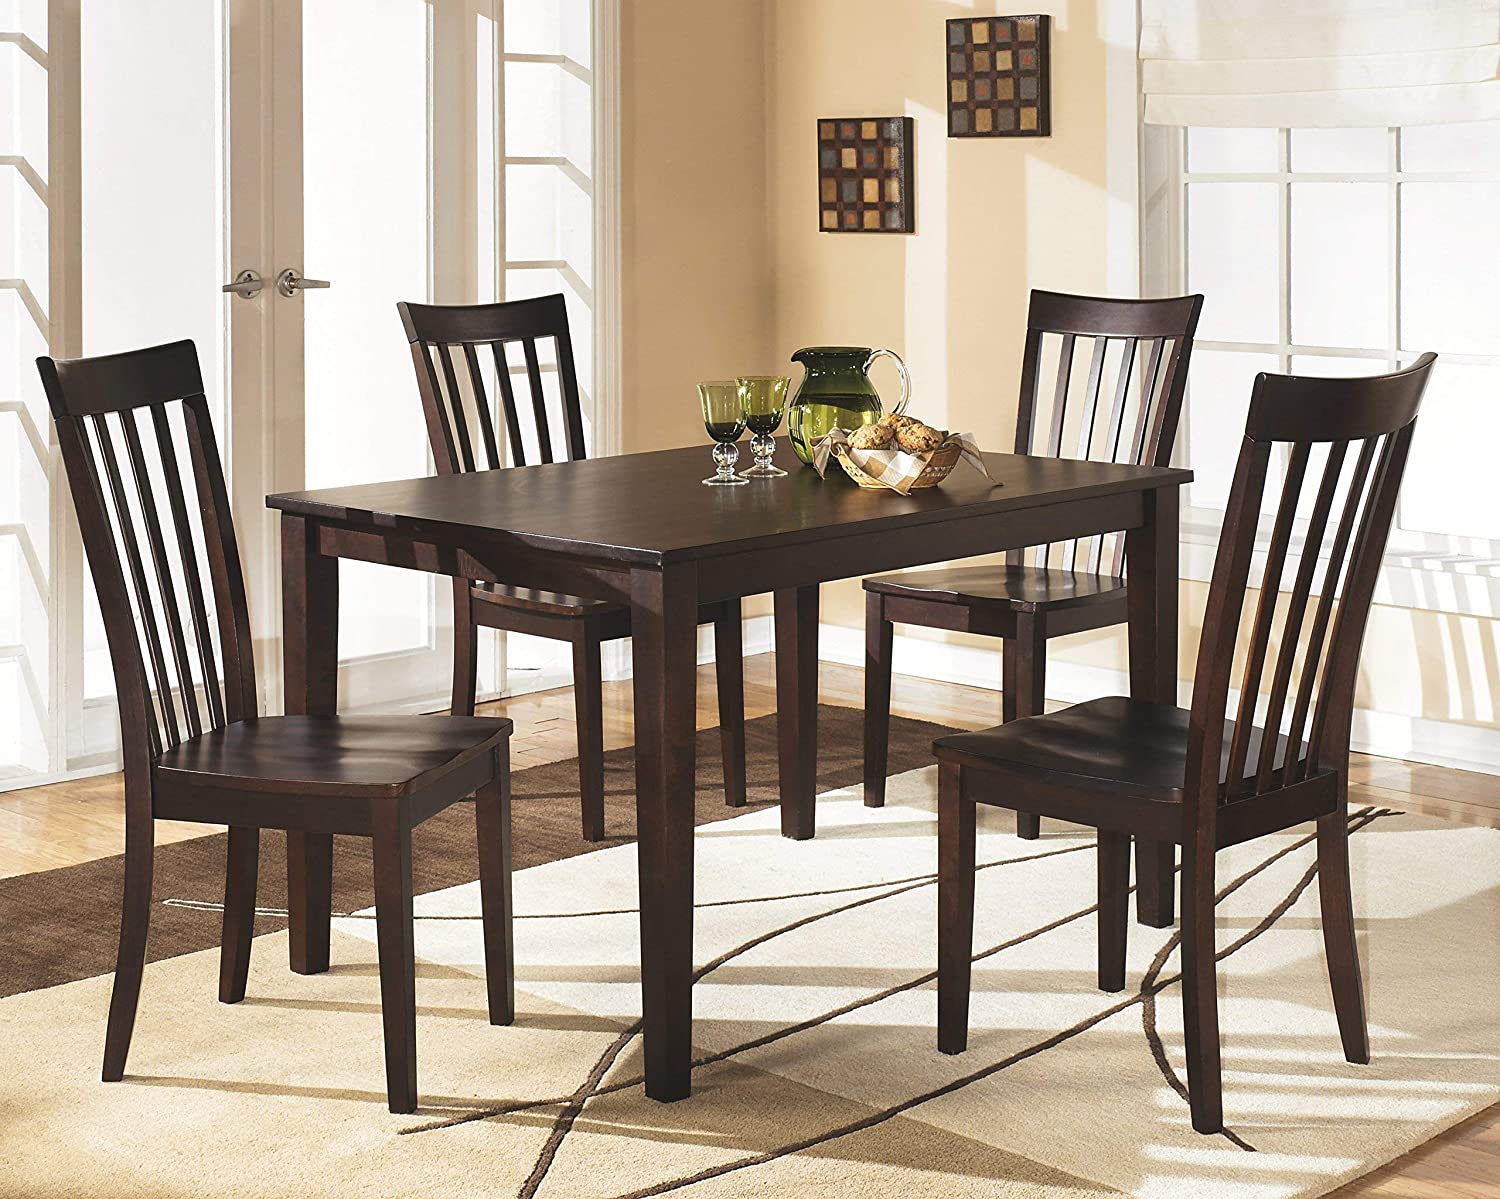 Signature Design by Ashley Hyland Dining Room Table and Chairs Set of 9,  Reddish Brown